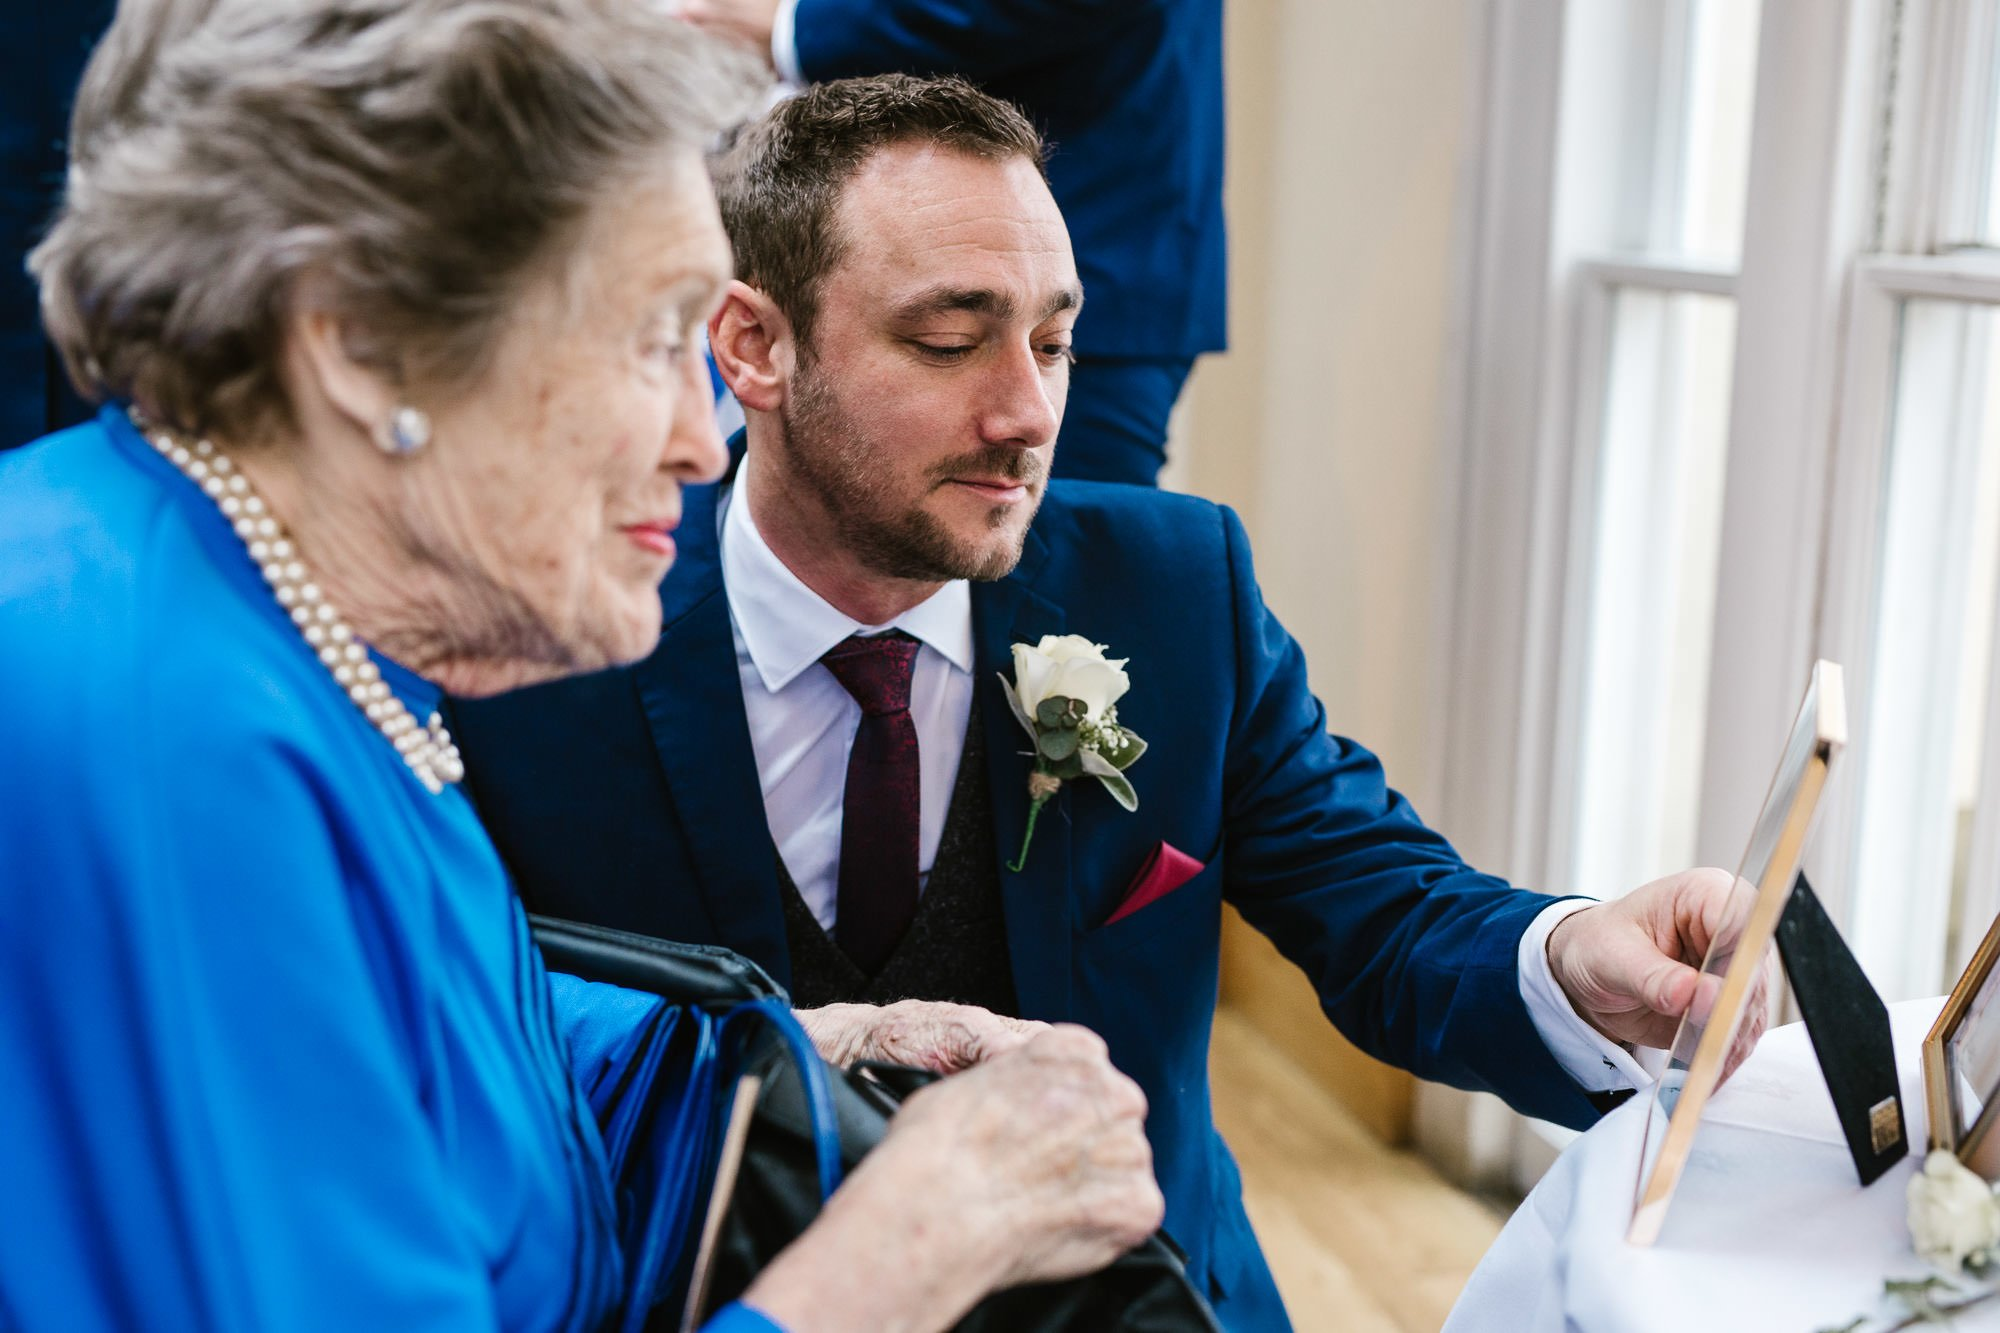 Pembroke Lodge Wedding Photography - Claudia and Danny 17